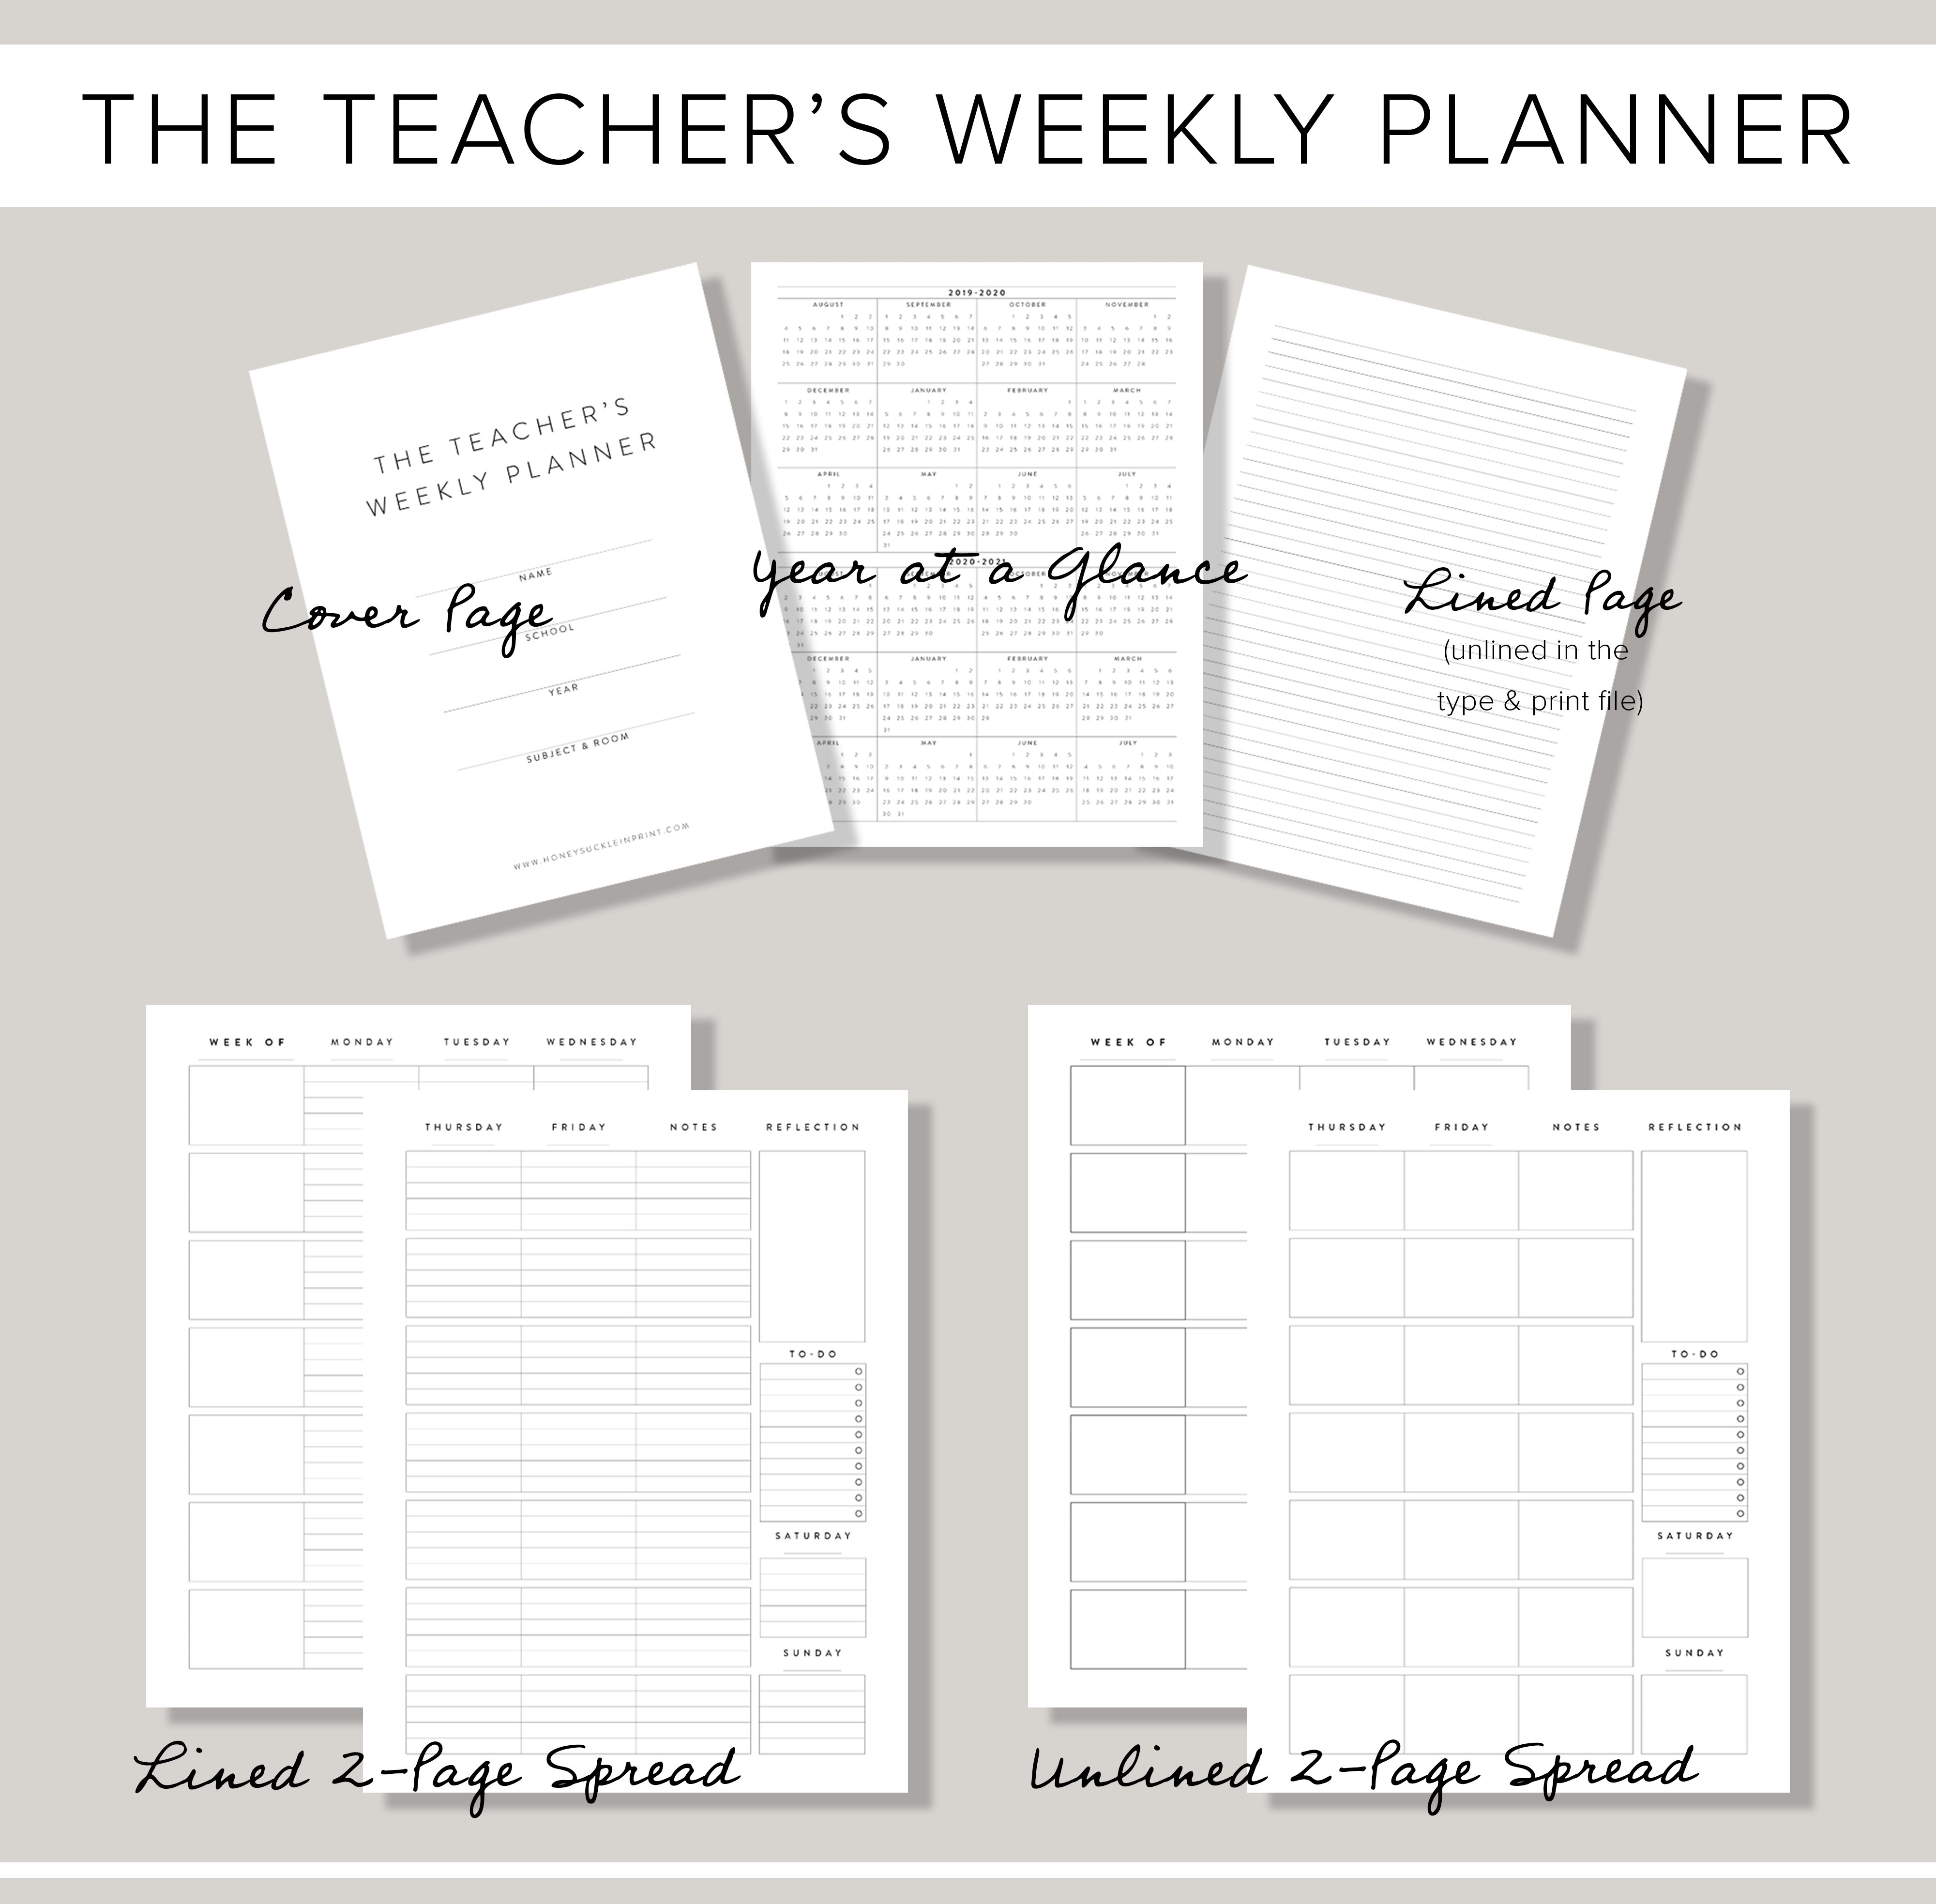 picture relating to Weekly Planner Printables referred to as Undated Printable Weekly Instructor Planner